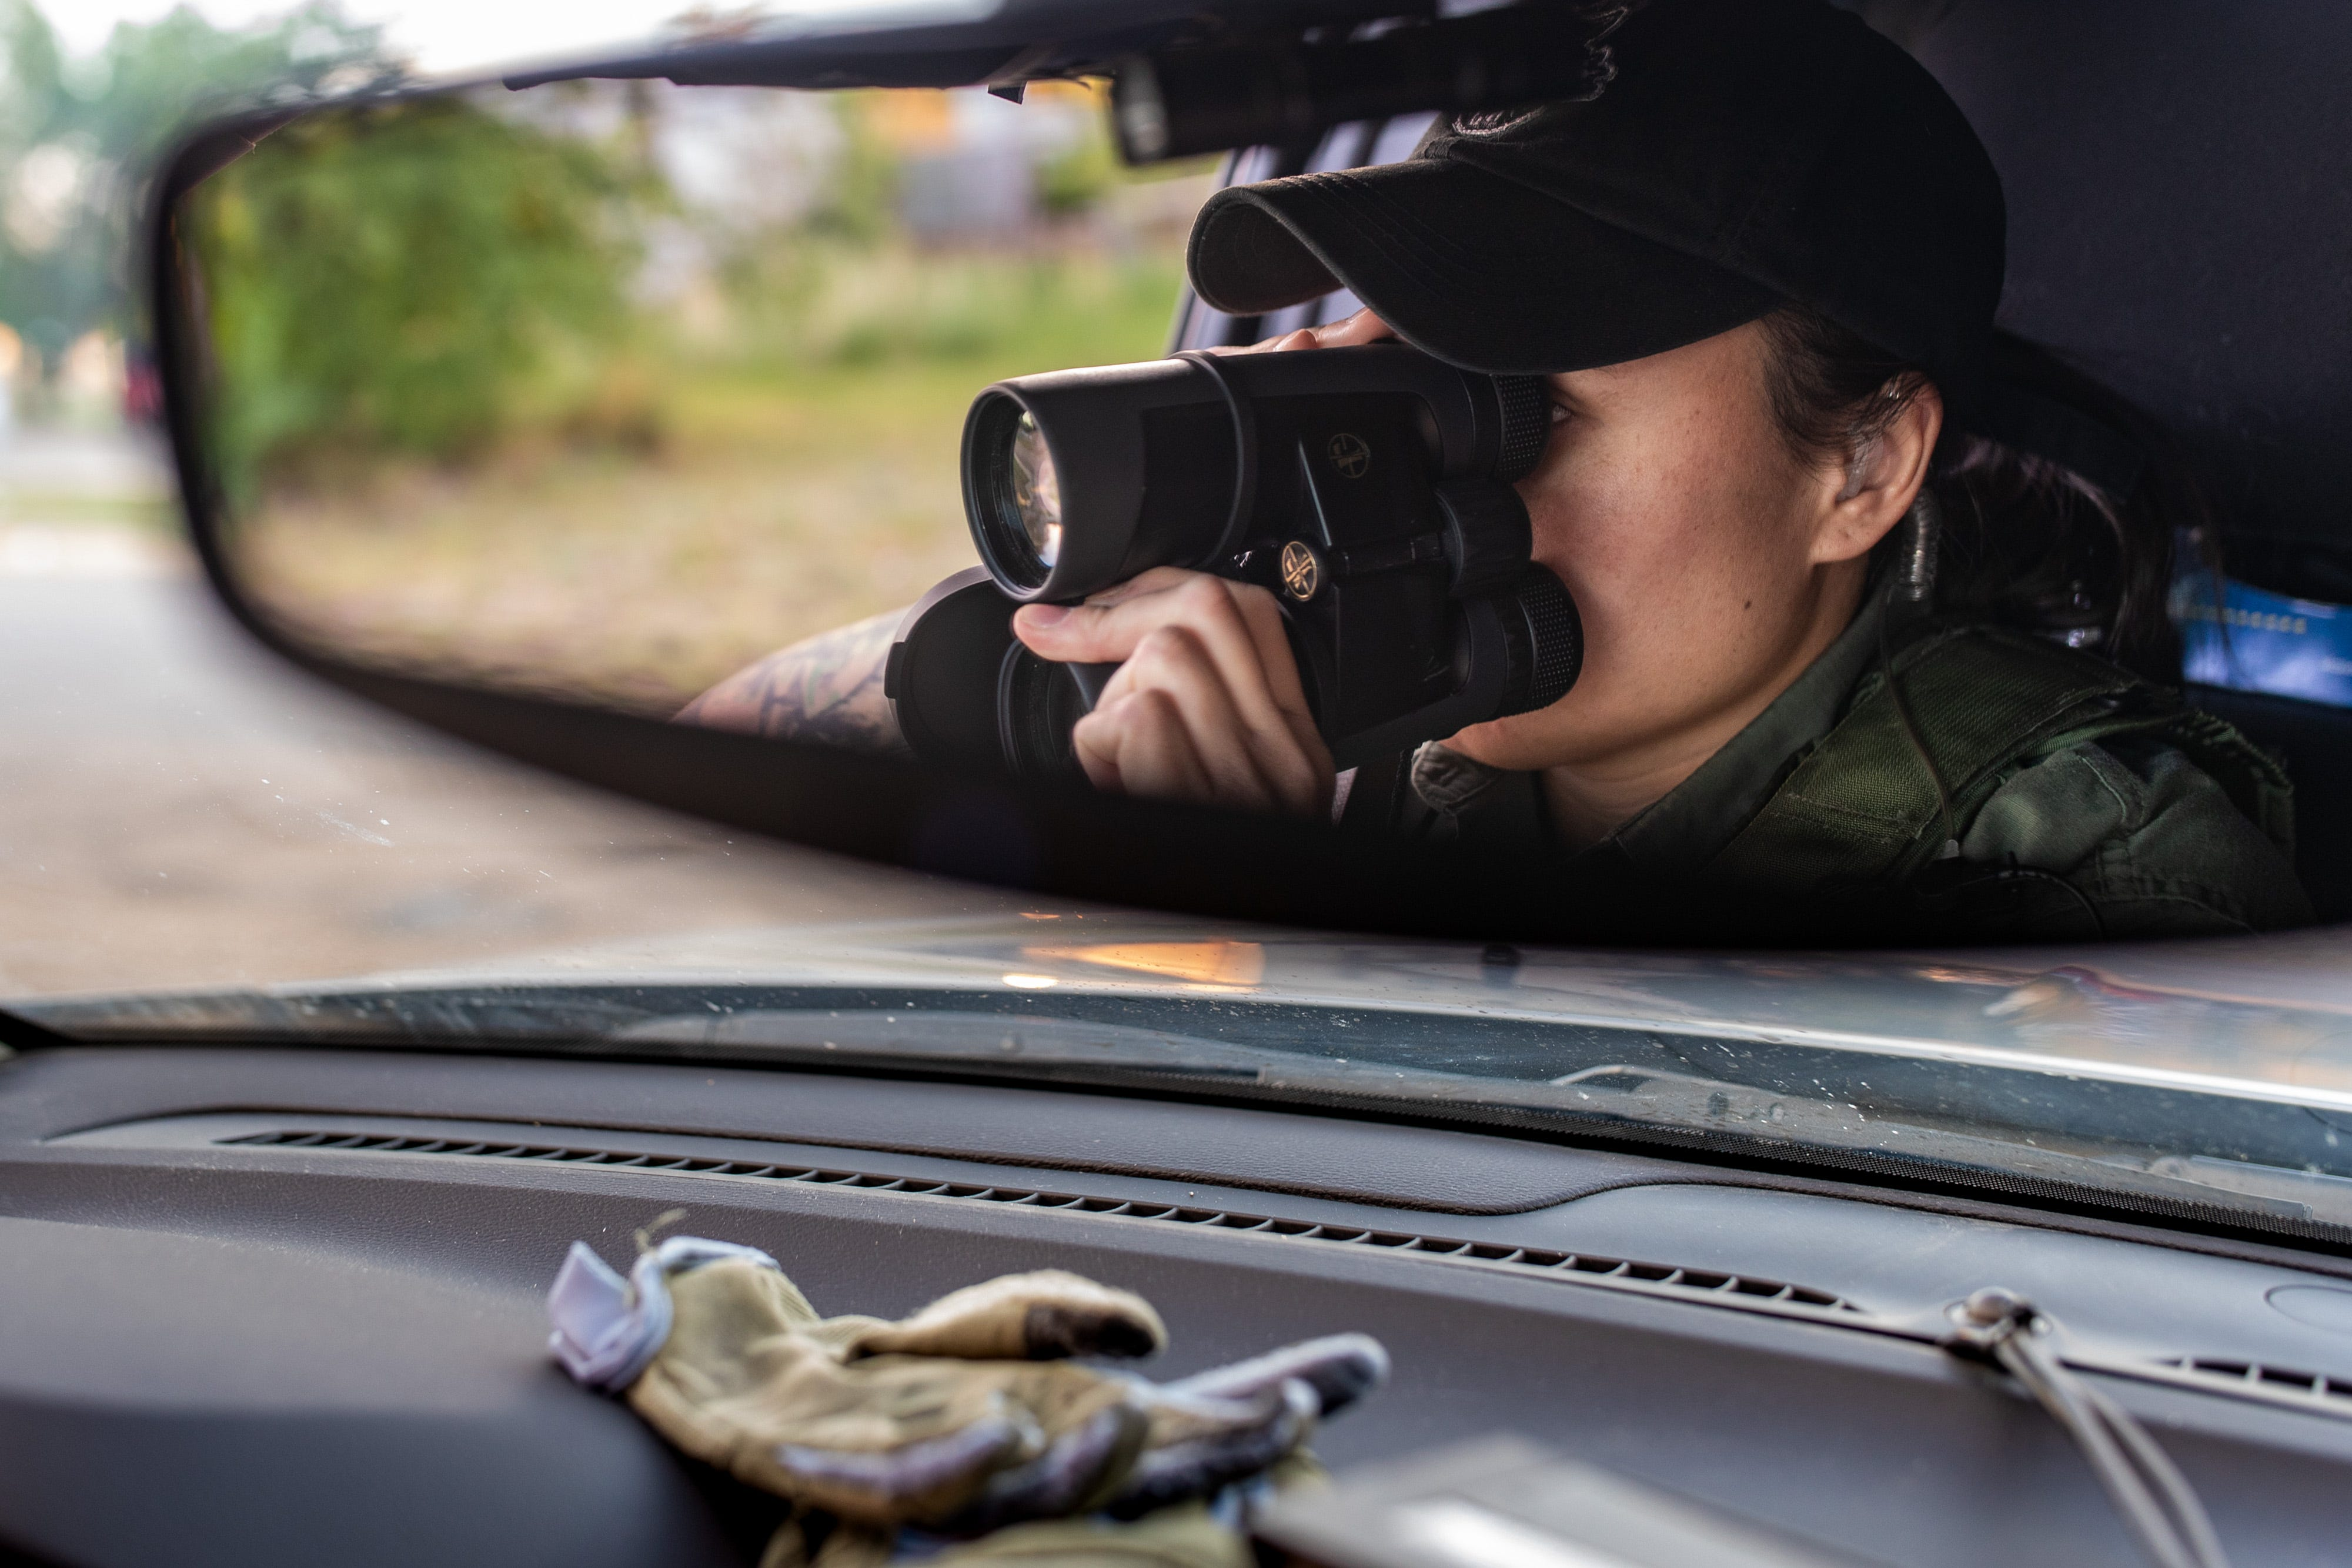 MHA Drug Enforcement patrol agent and K9 handler, Britney Larvie, watches for suspicious activity while on patrol in Parshall, North Dakota. June 25, 2021